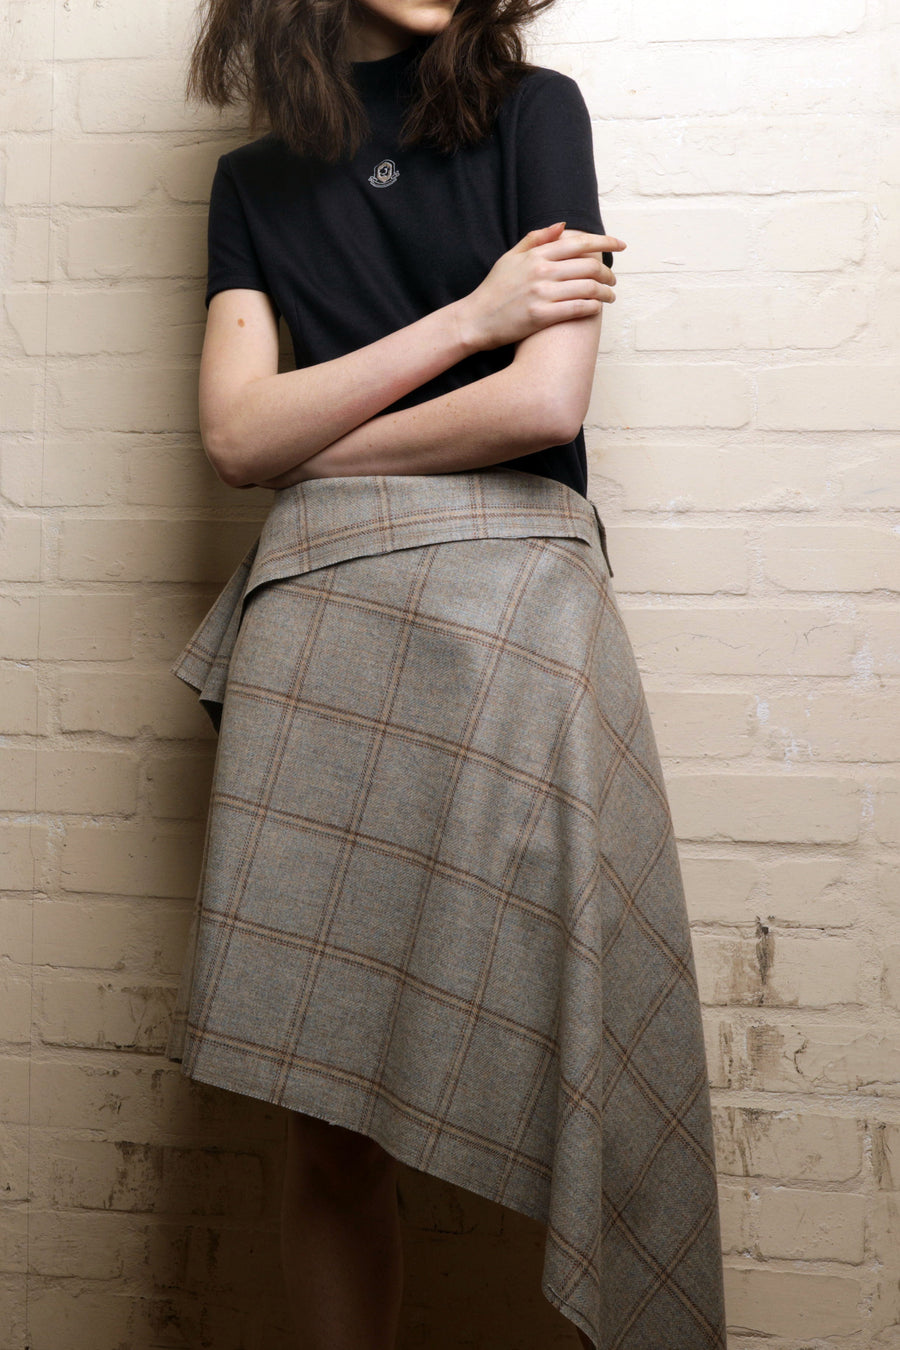 SALLY – DRAPED SQUARE DOUBLE SIDED WOOL SKIRT